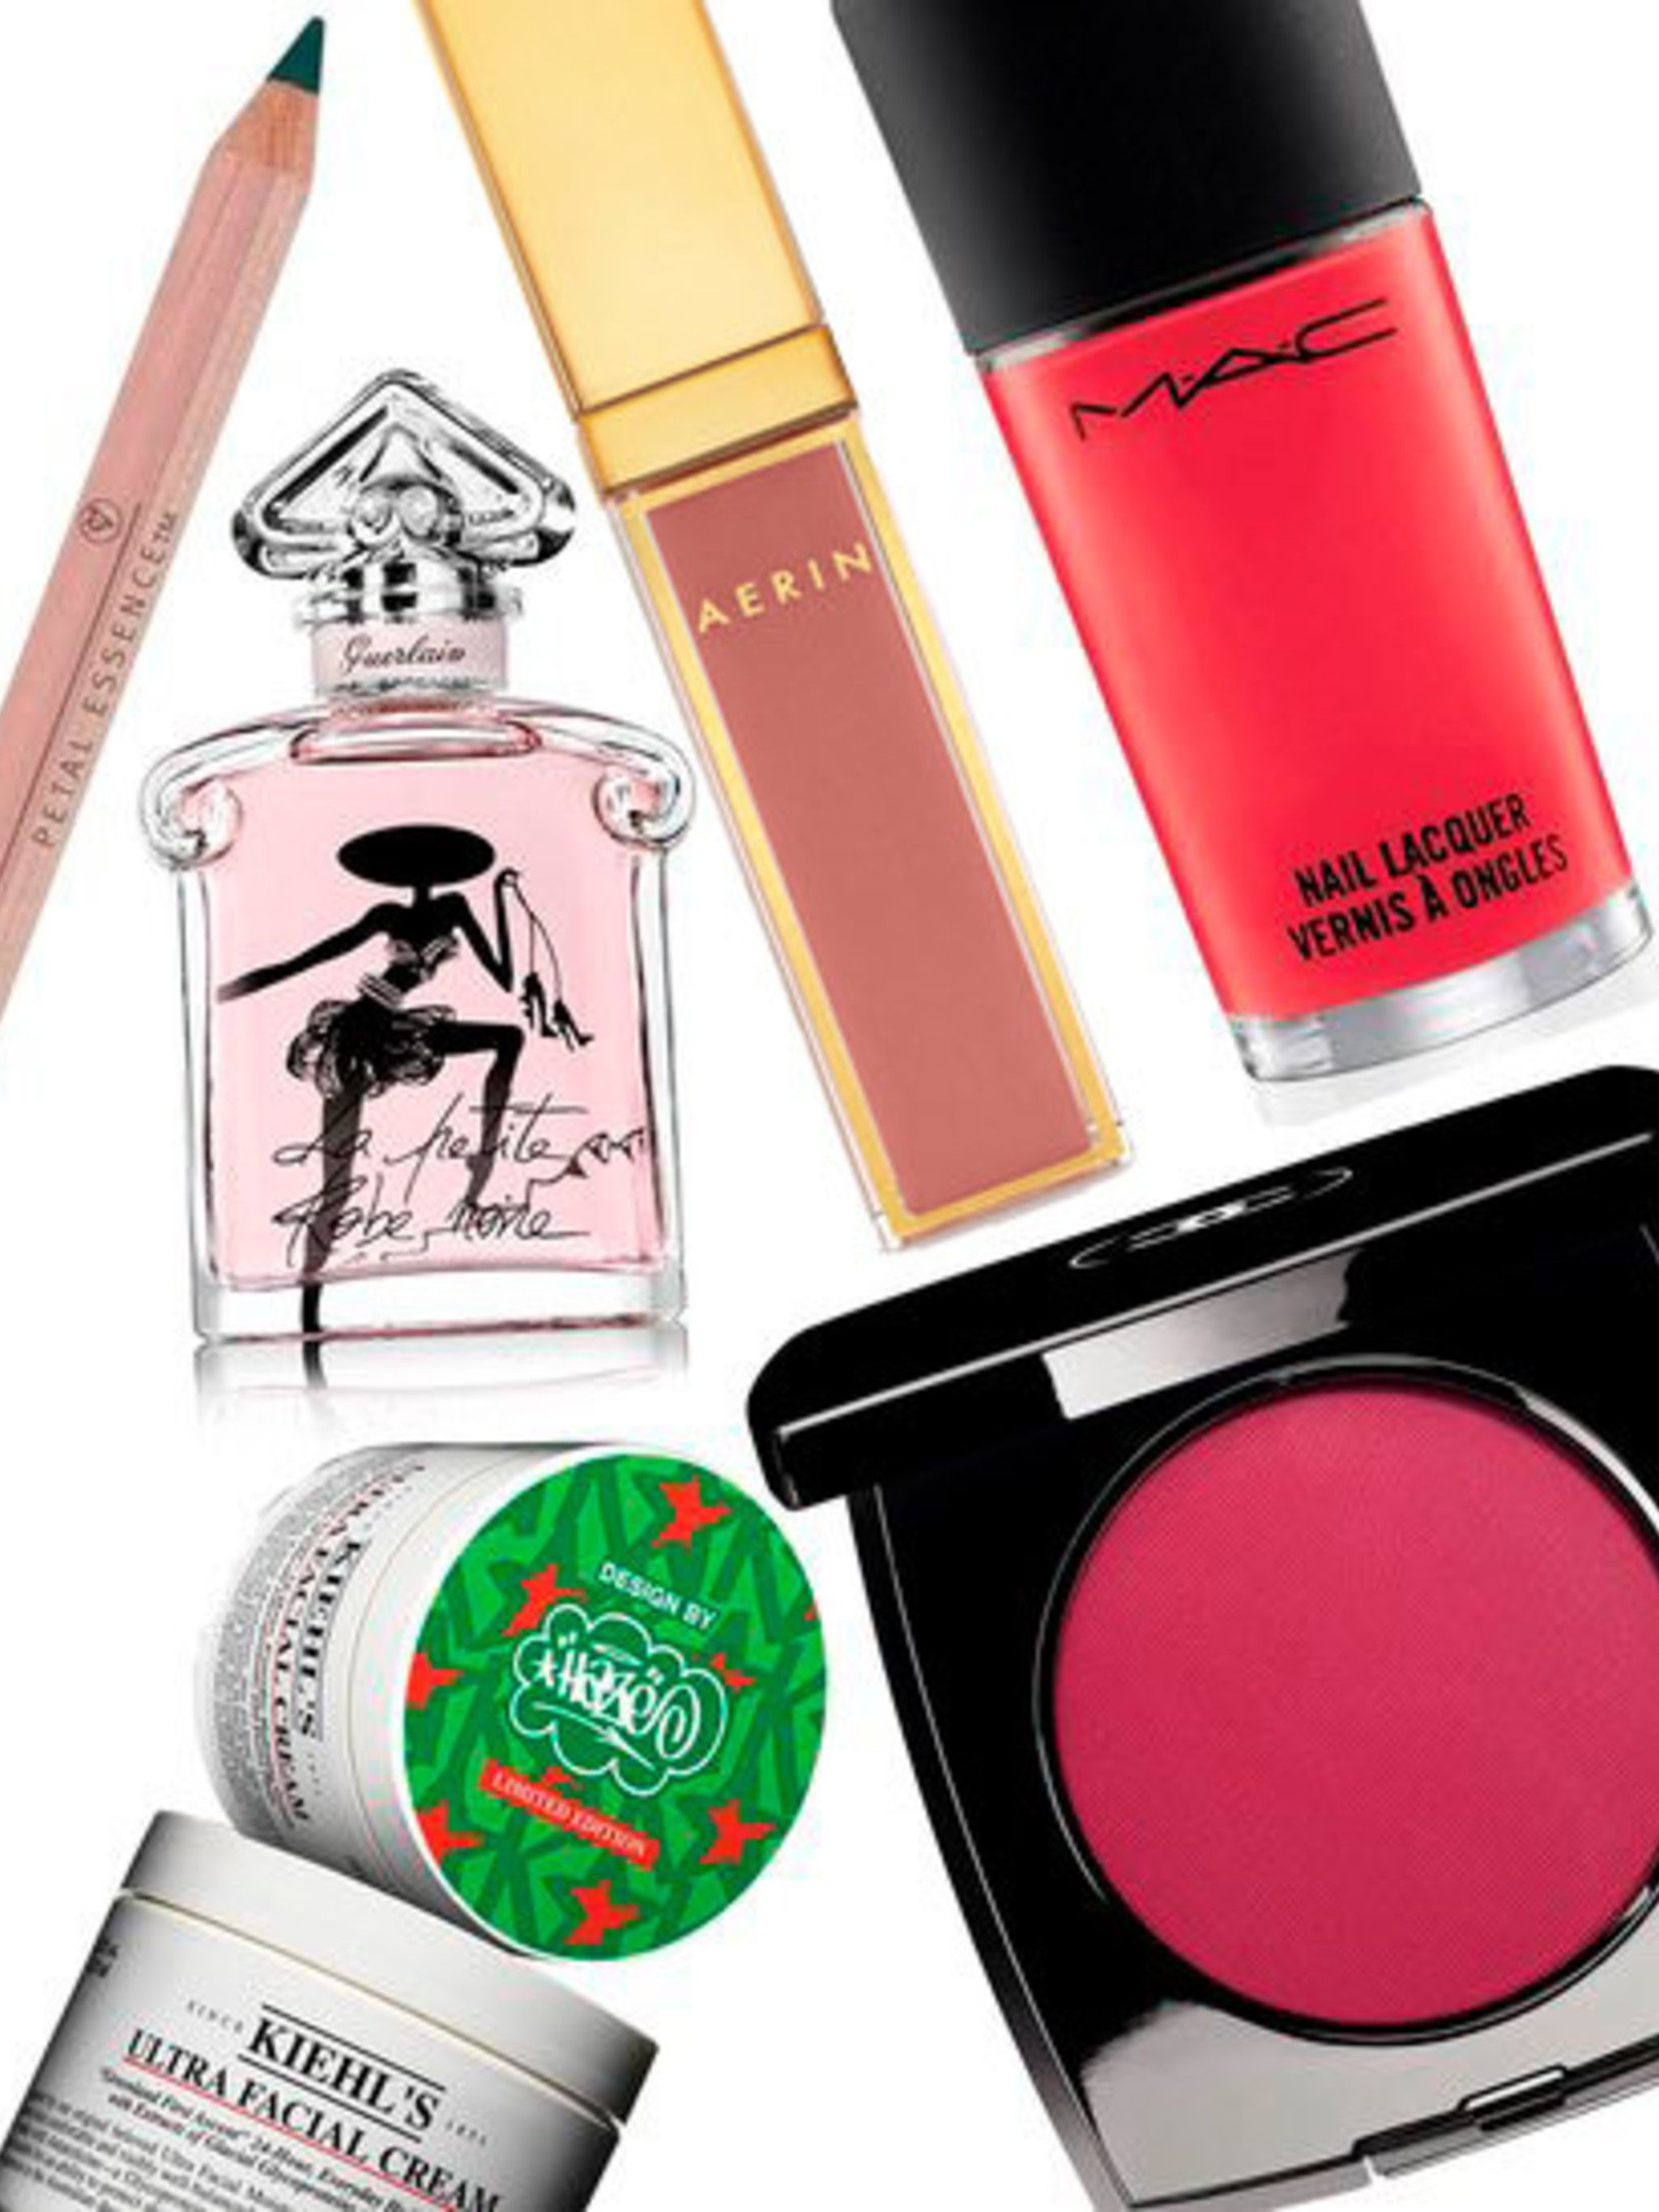 <p>Winter is fast approaching (scary we know) and with the new season comes heaps of new products from our favourite beauty brands, but what really gets us going each year? The limited edition products that are destined to be sell-outs from the moment the